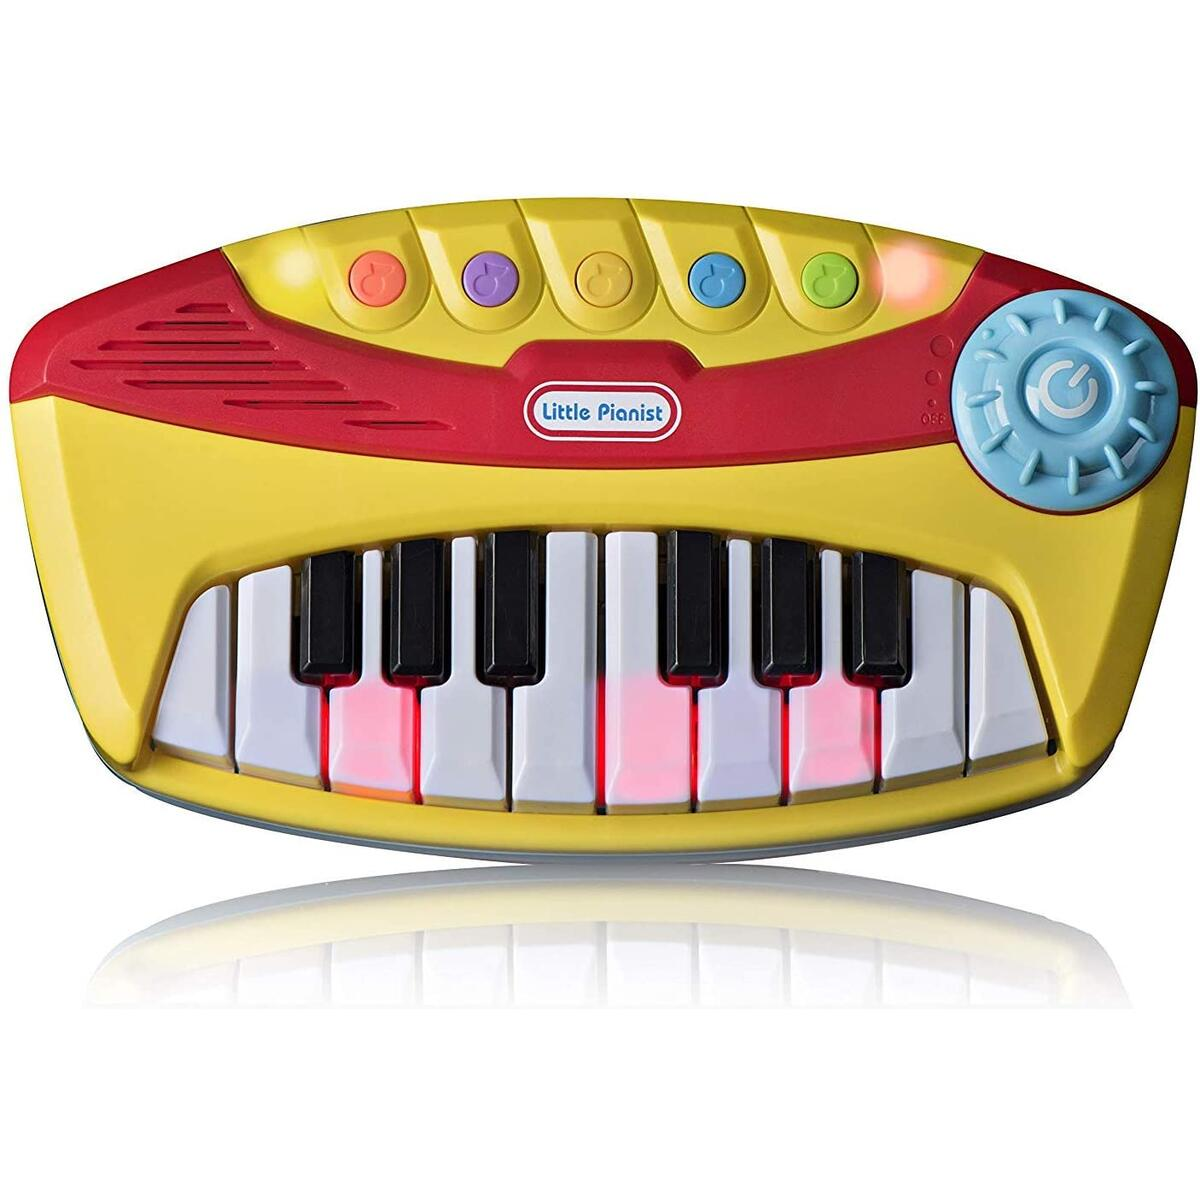 Electronic Organ Music Keyboard for little kids - My First Piano - With Lights and Music, for children ages 18 Months+